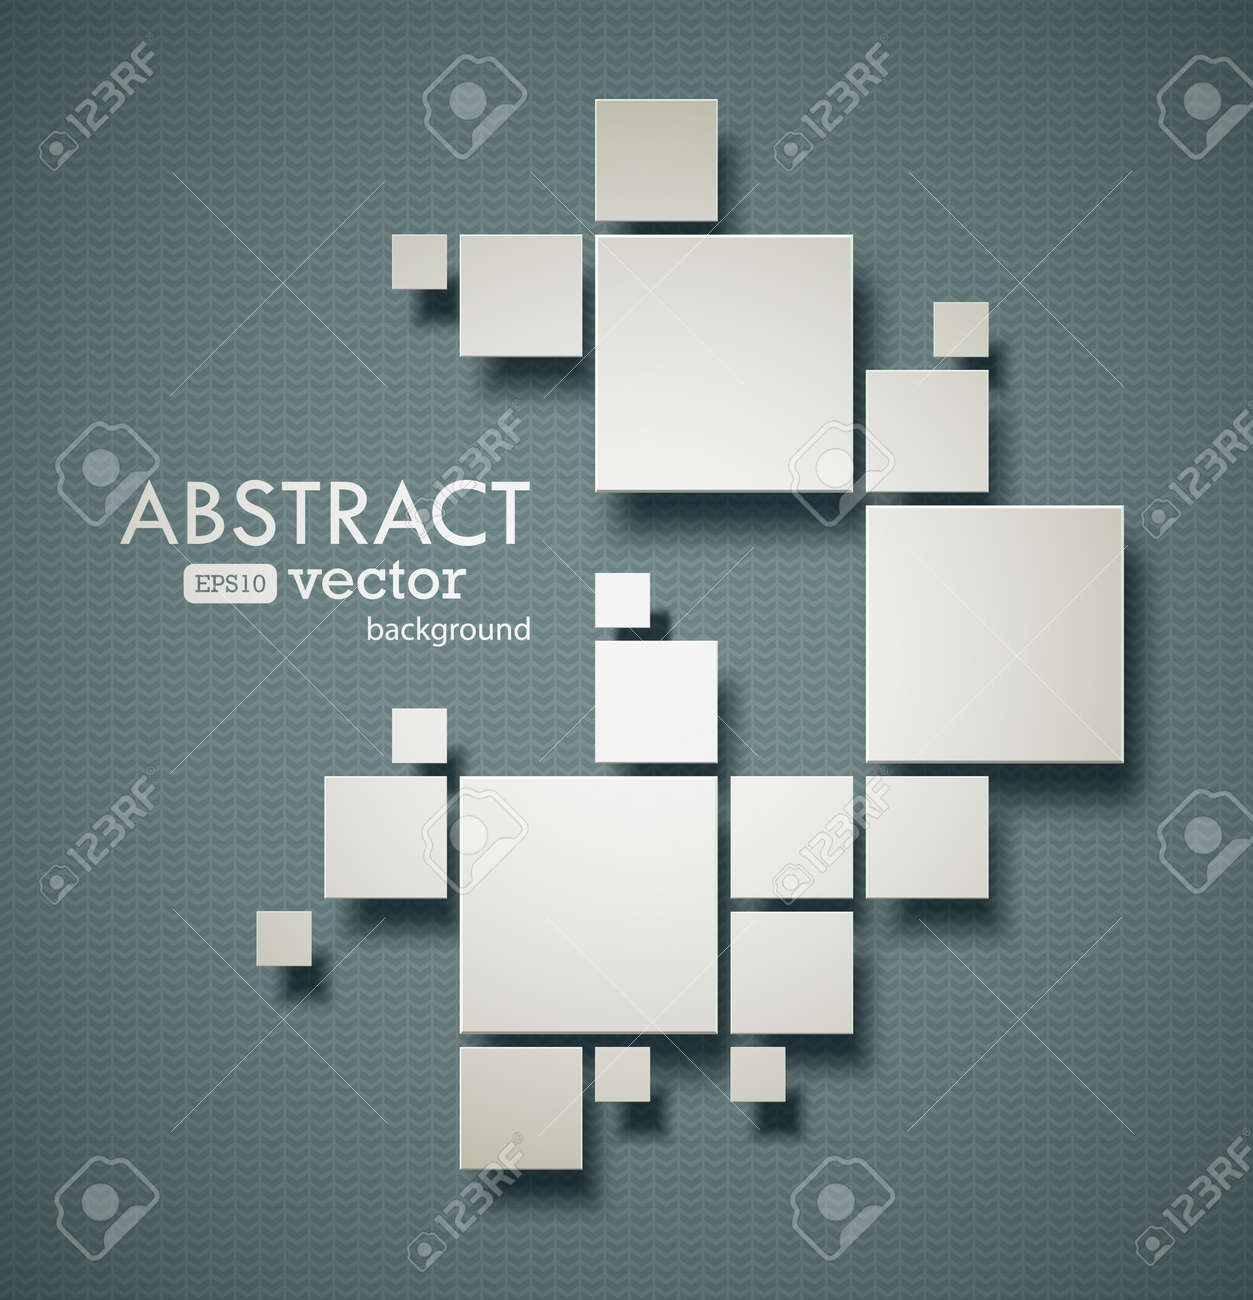 Abstract squares background with realistic shadows. EPS10 vector image. - 31806384